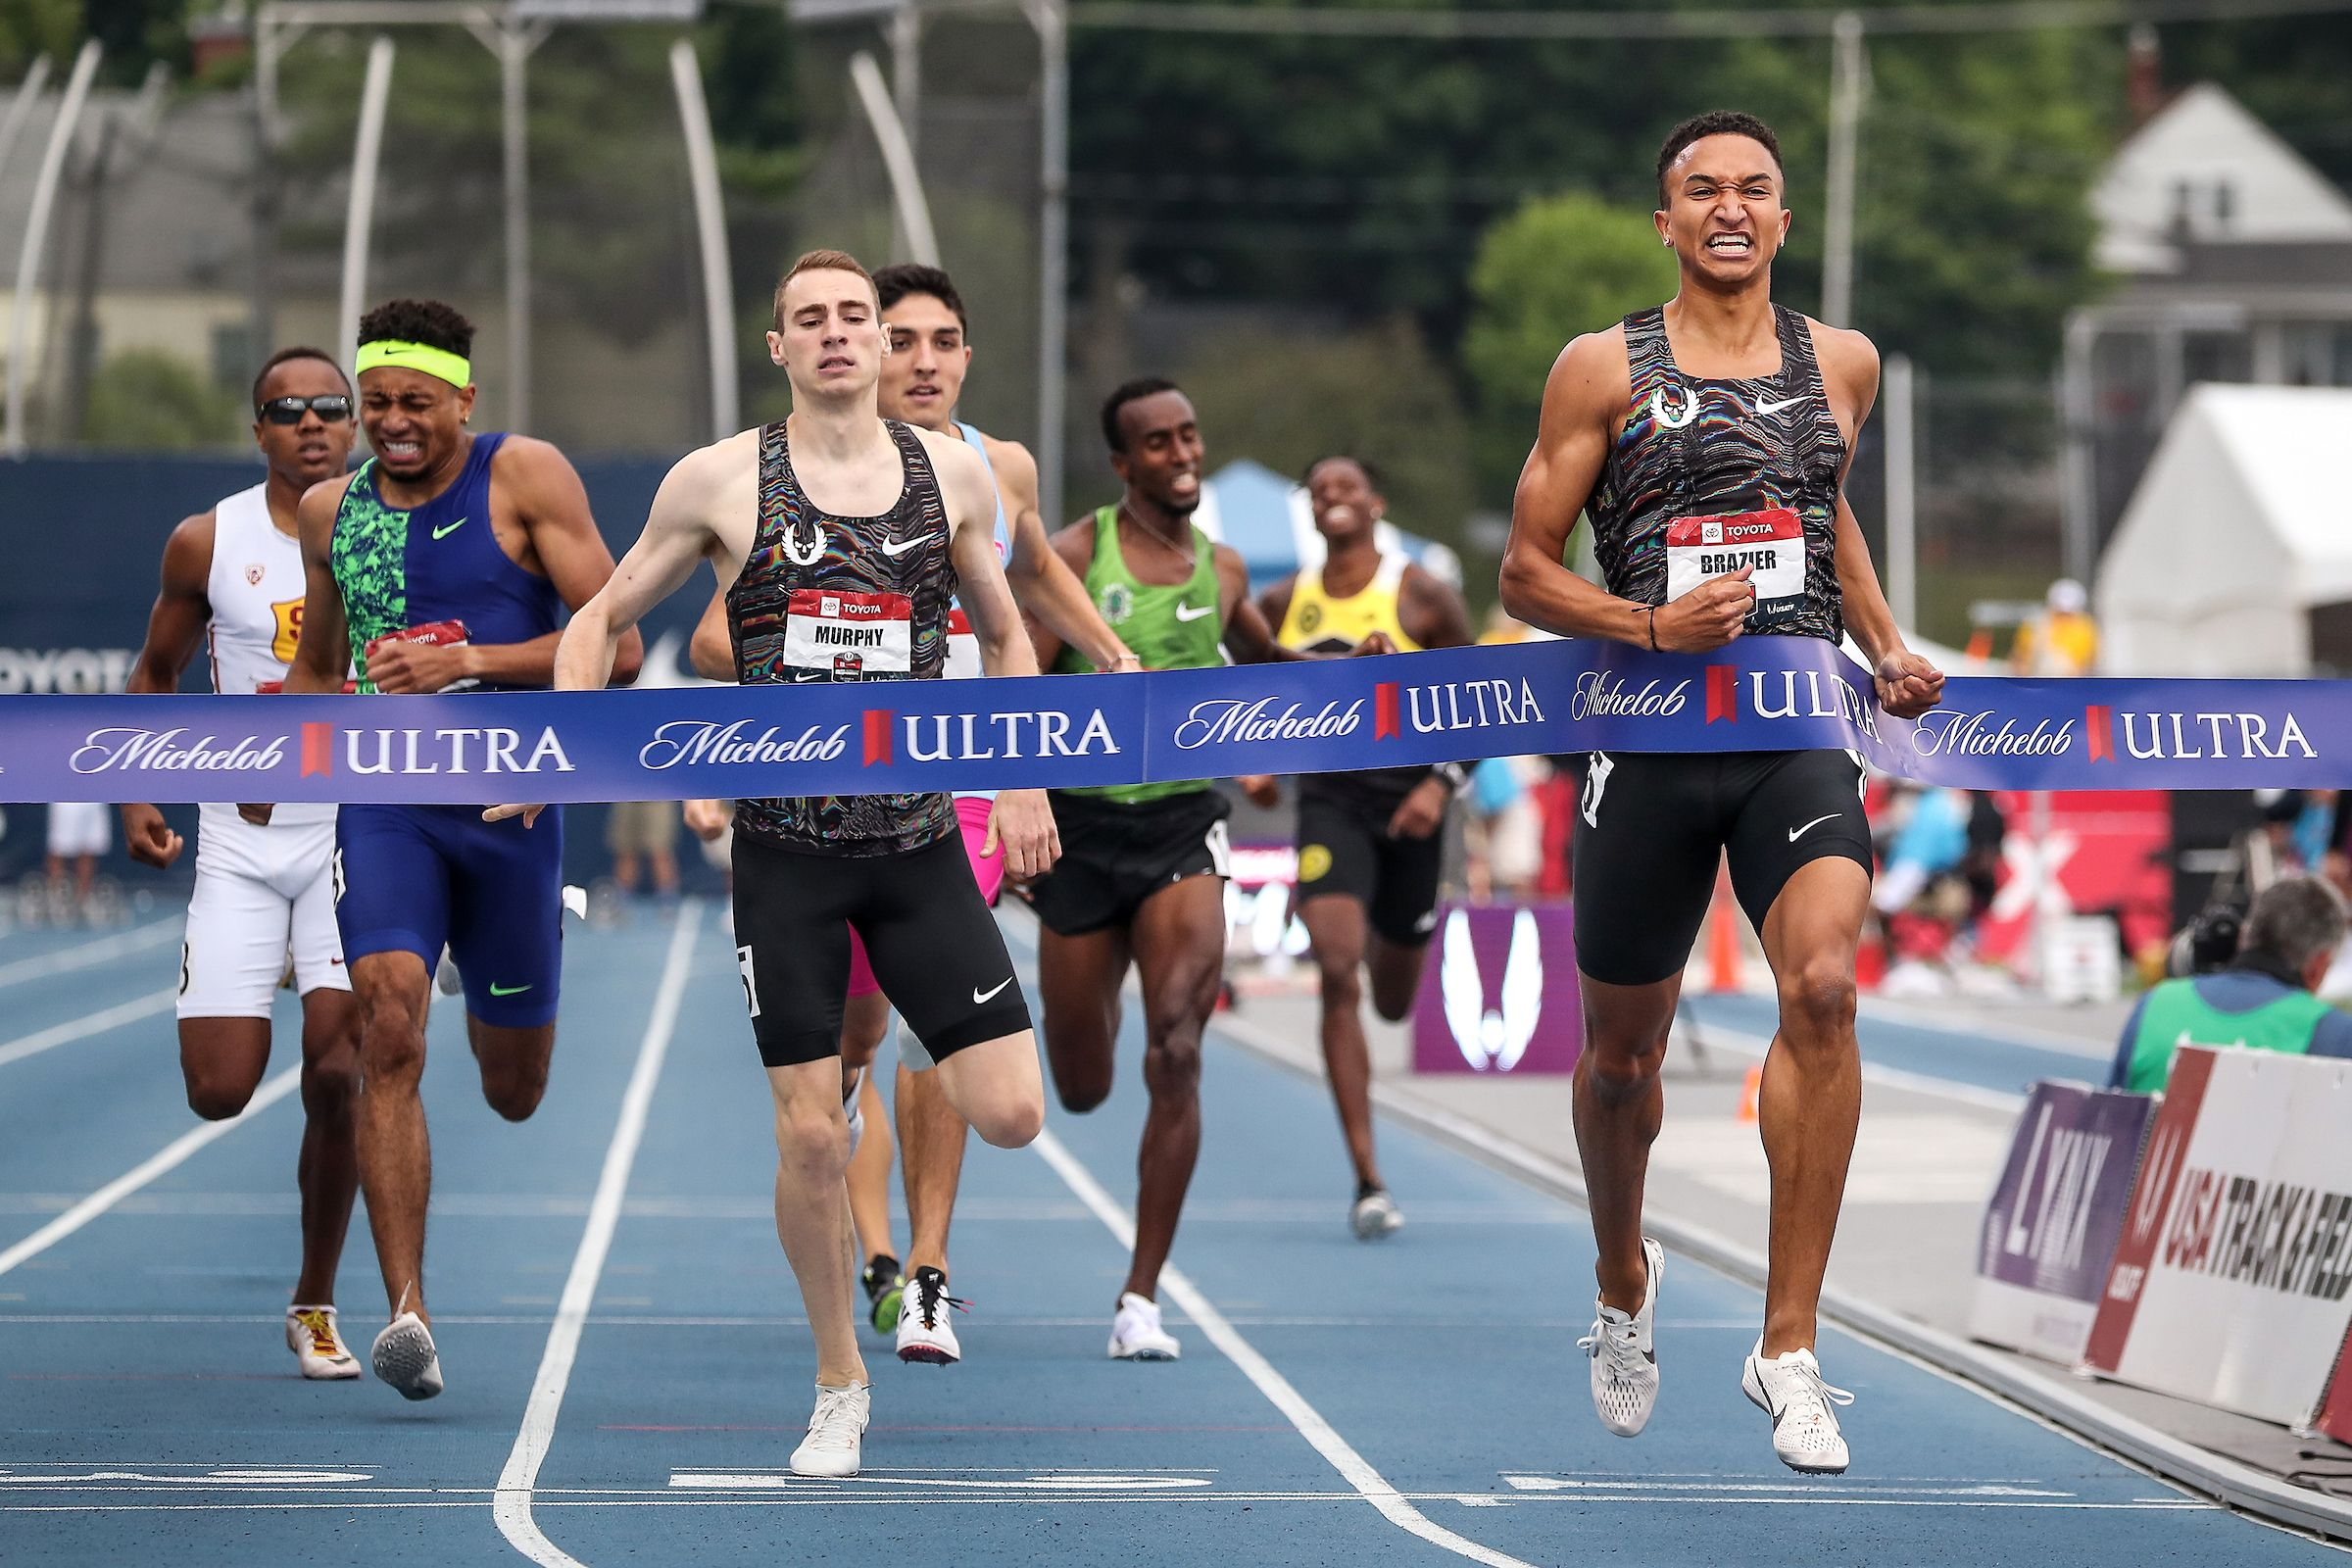 2019 USATF Outdoor National Championships Results and Highlights